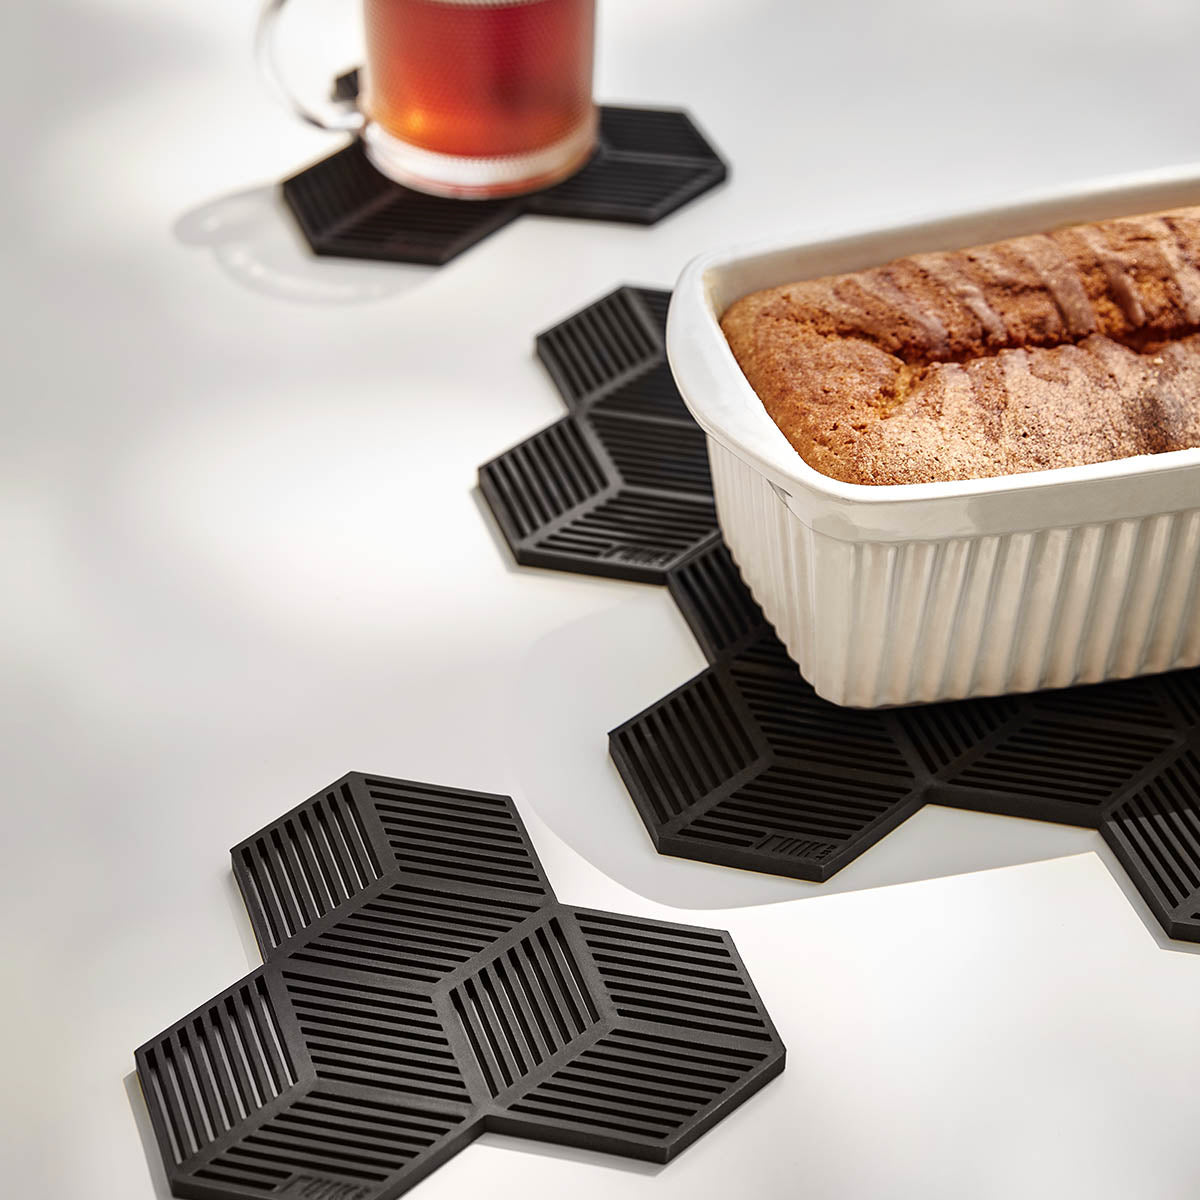 Fun and playful geometric trivets to protect surfaces from hot pots